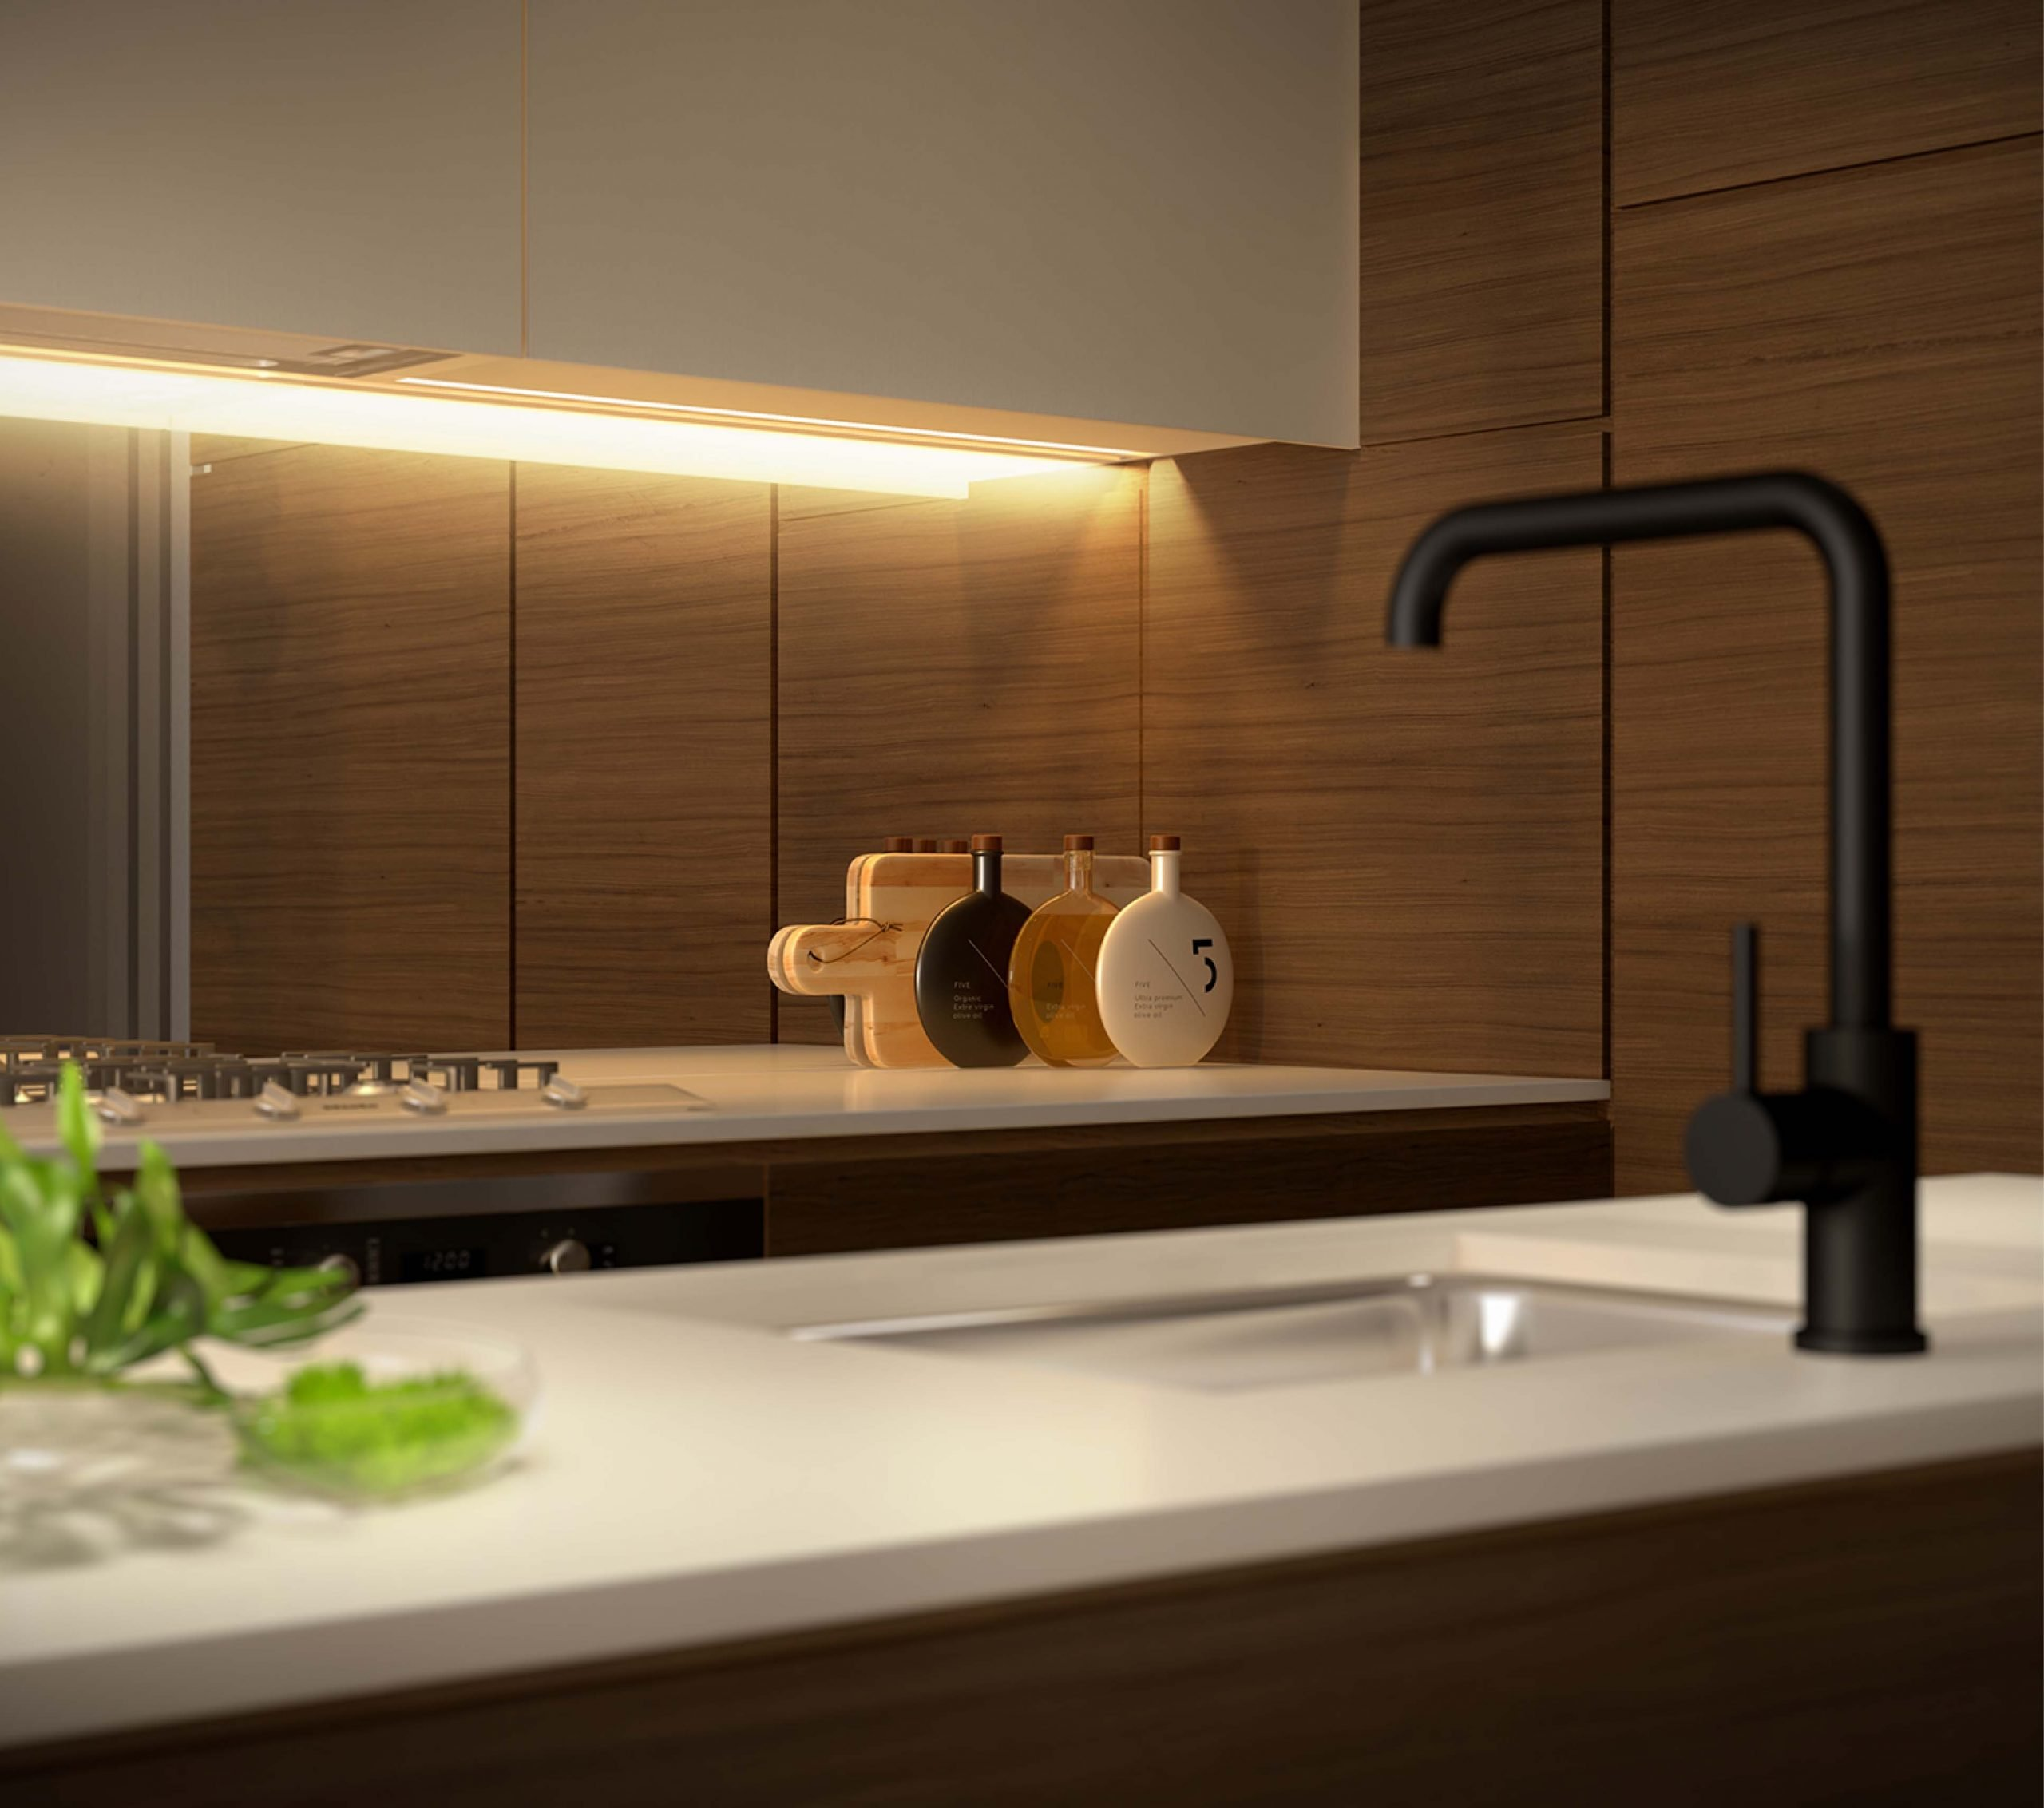 kitchen with timber interiors and sink